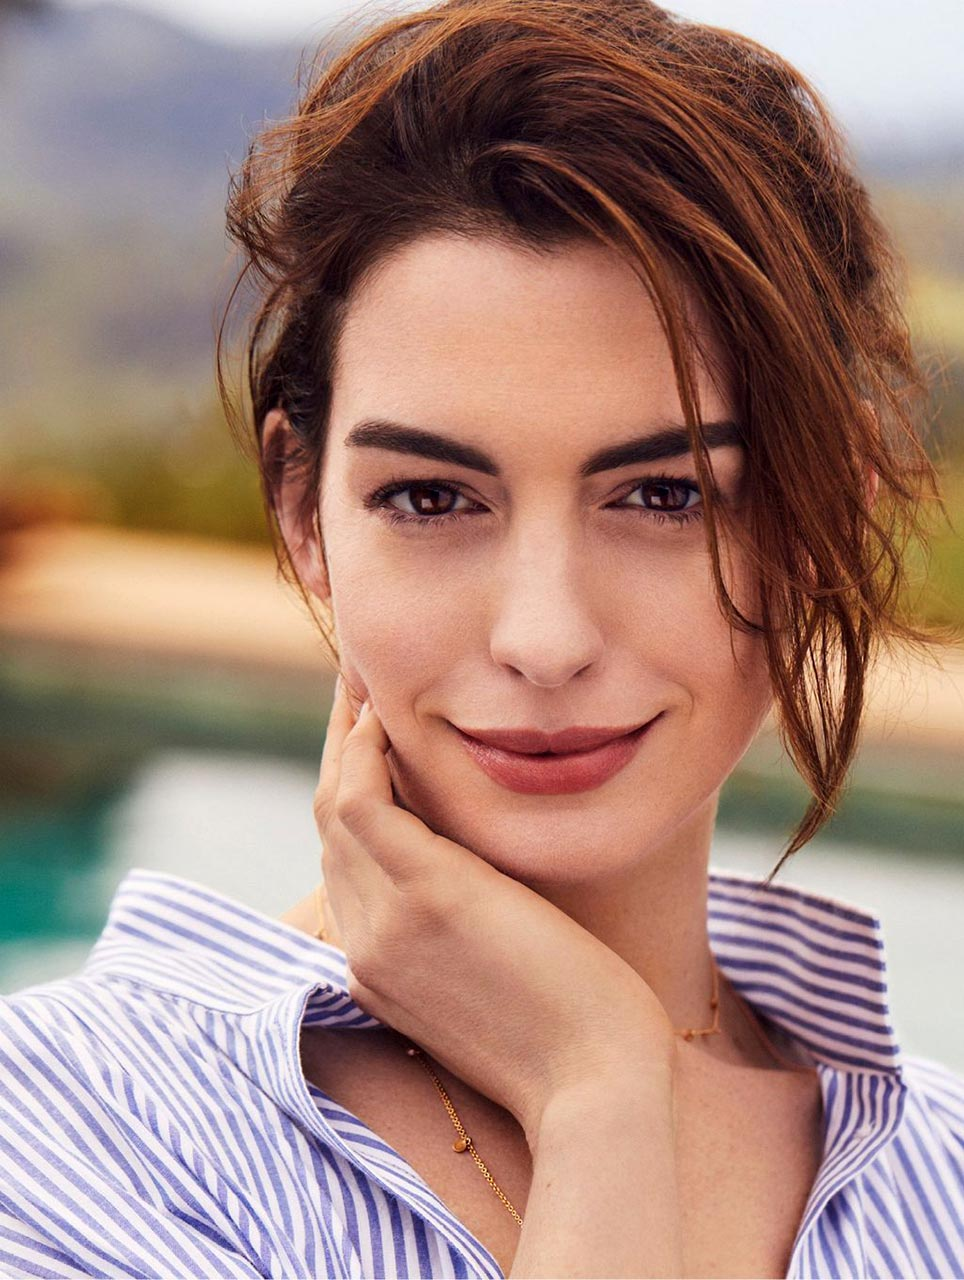 Anne Hathaway Sexy for Shape Magazine - Scandal Planet